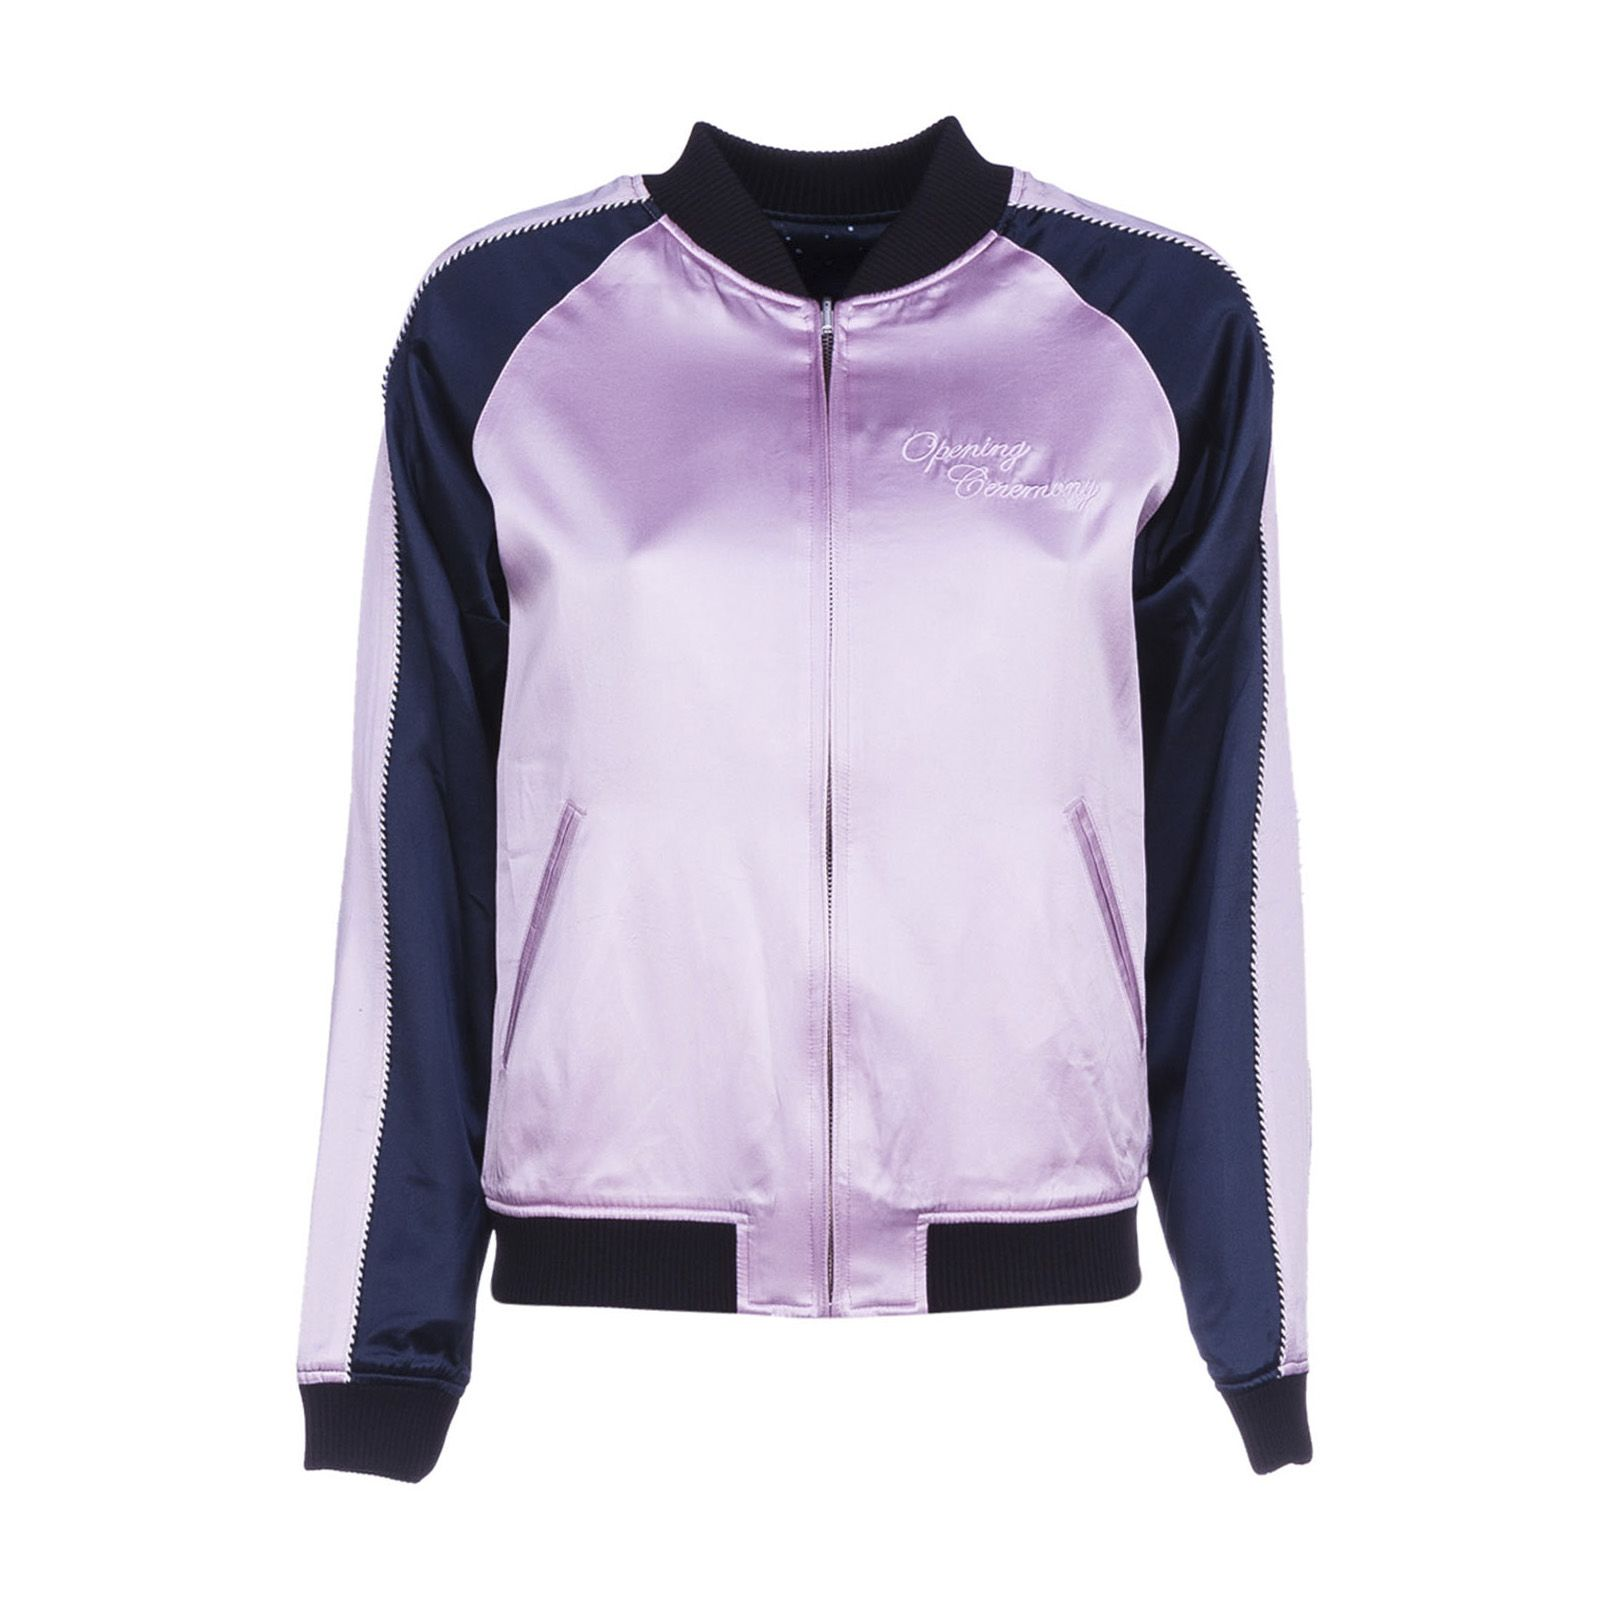 OPENING CEREMONY Woman Reversible Two-Tone Embroidered Silk-Satin Bomber Jacket Pink, Black